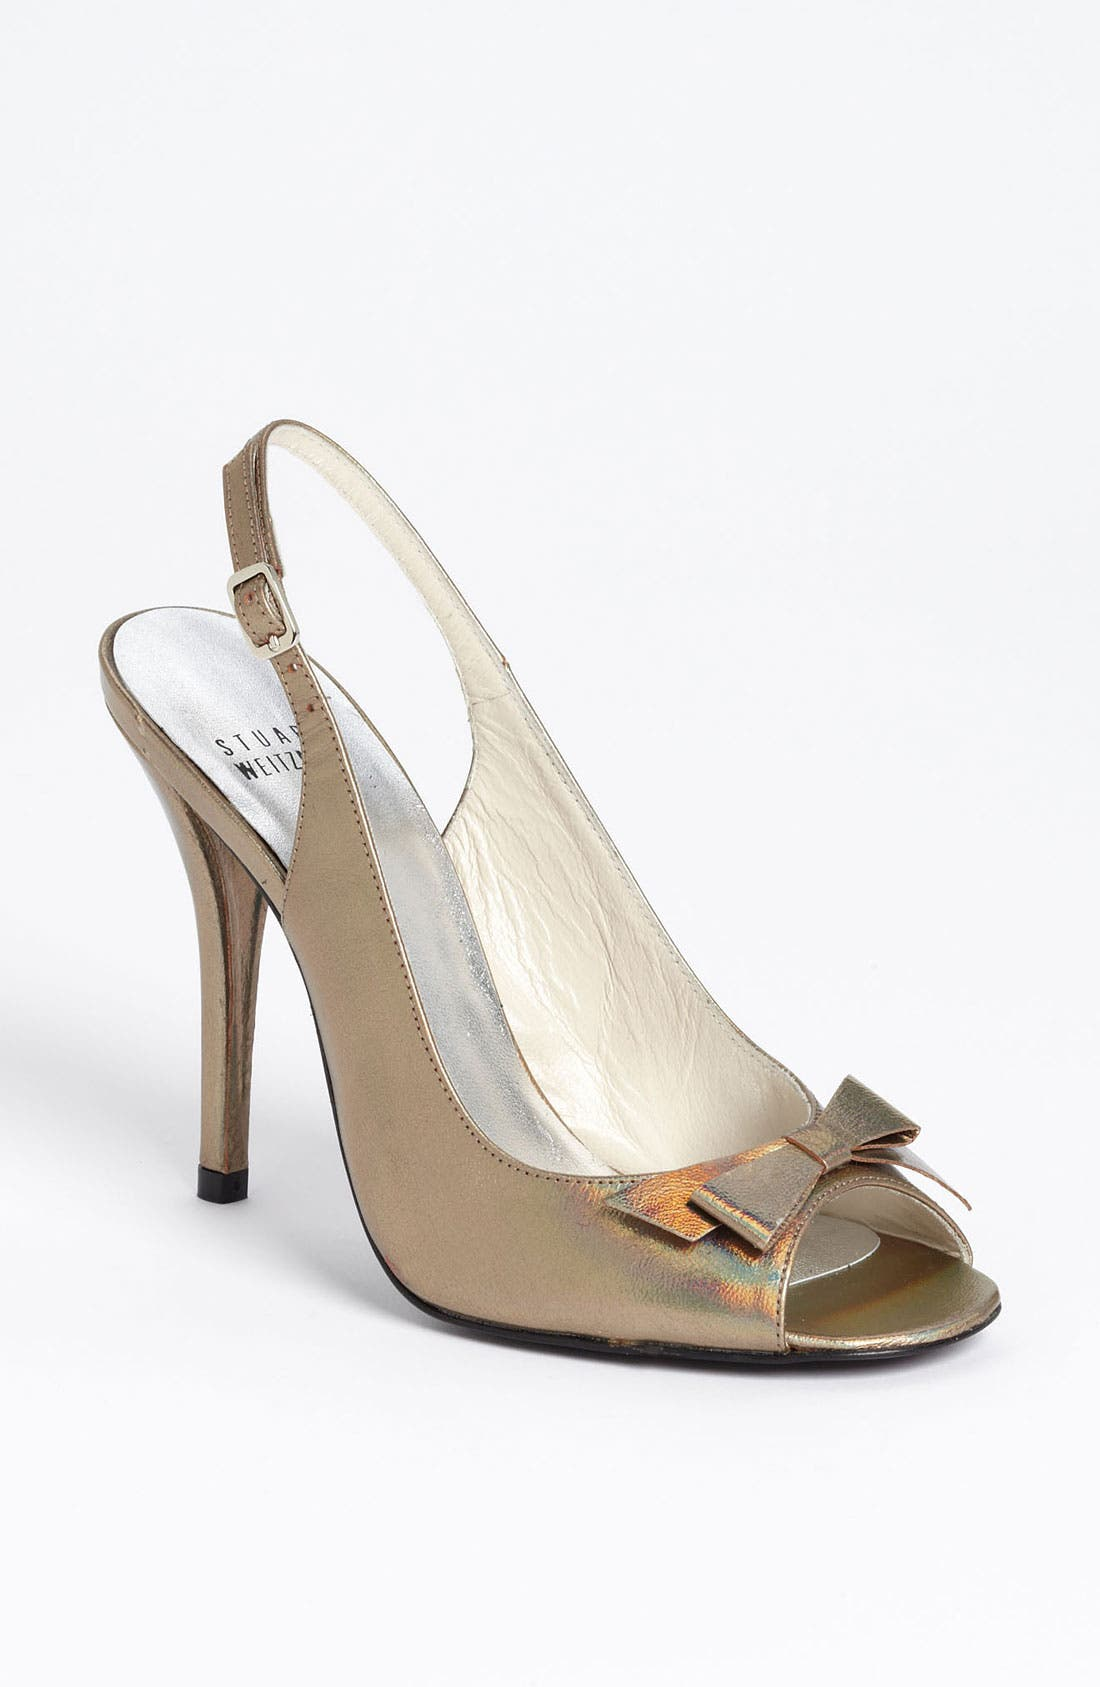 Alternate Image 1 Selected - Stuart Weitzman 'Beaucoup' Sandal